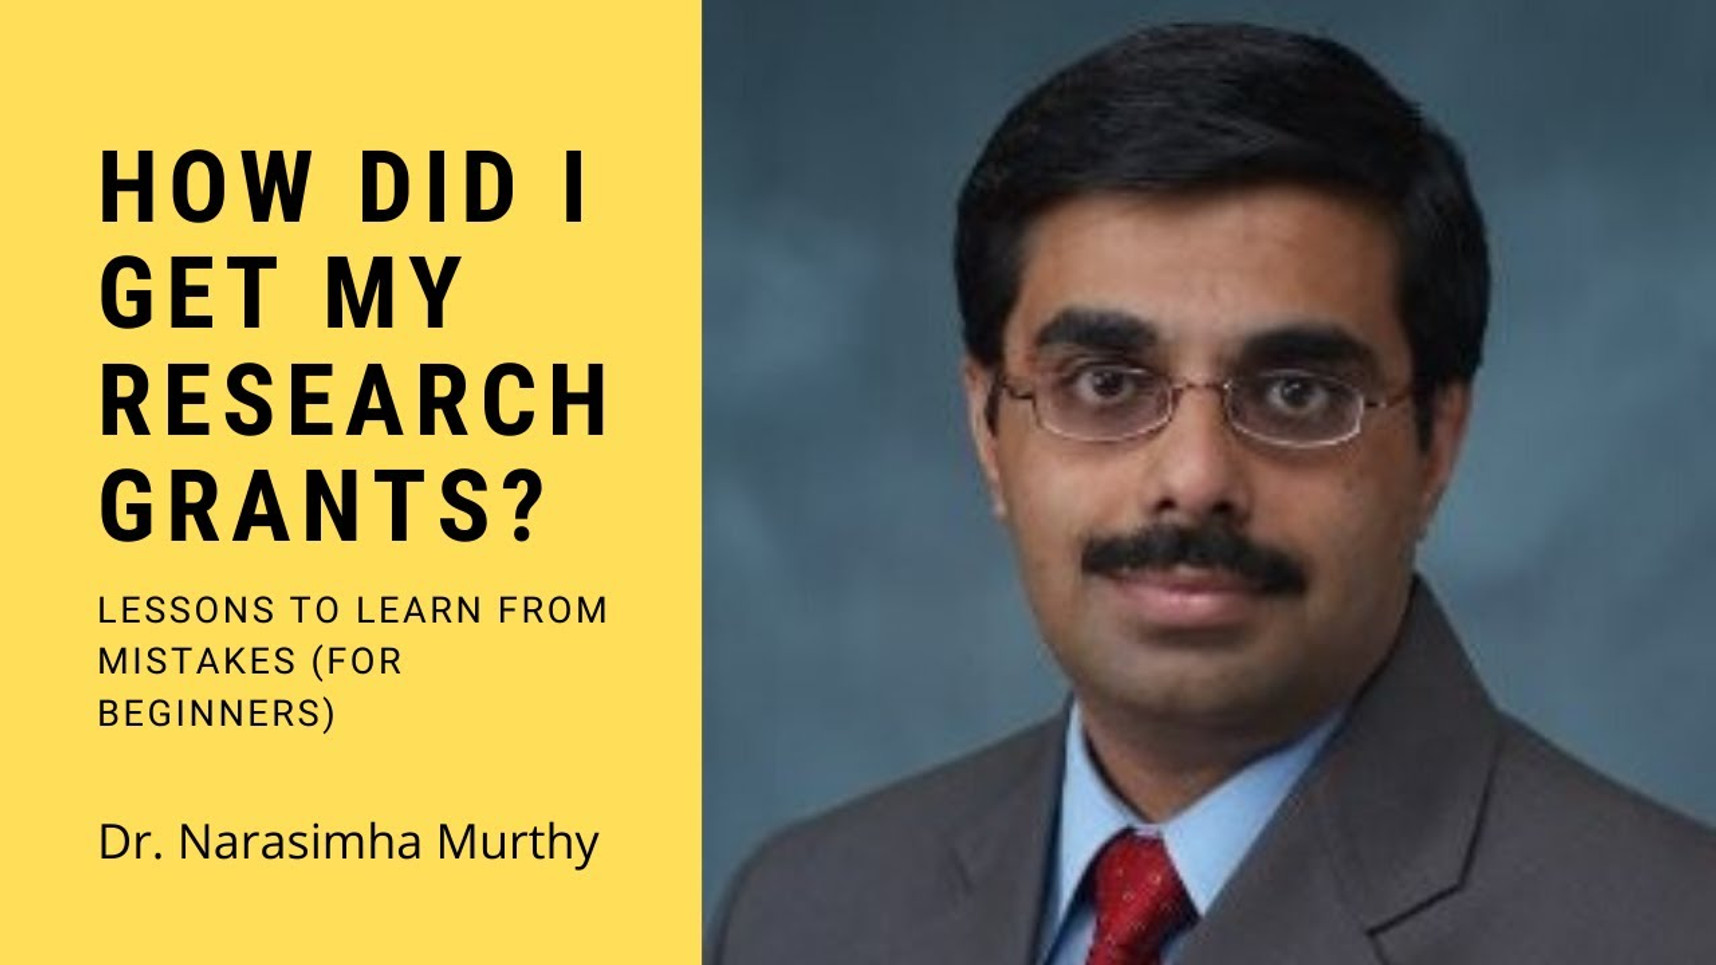 ". Dr. Narasimha Murthy presented a Webinar, organized by the Association of Pharmaceutical Teachers of India (APTI) on June 20, 2020 on topic ""How did I get my Research Grants? Lessons to Learn from Mistakes (For Beginners)"""